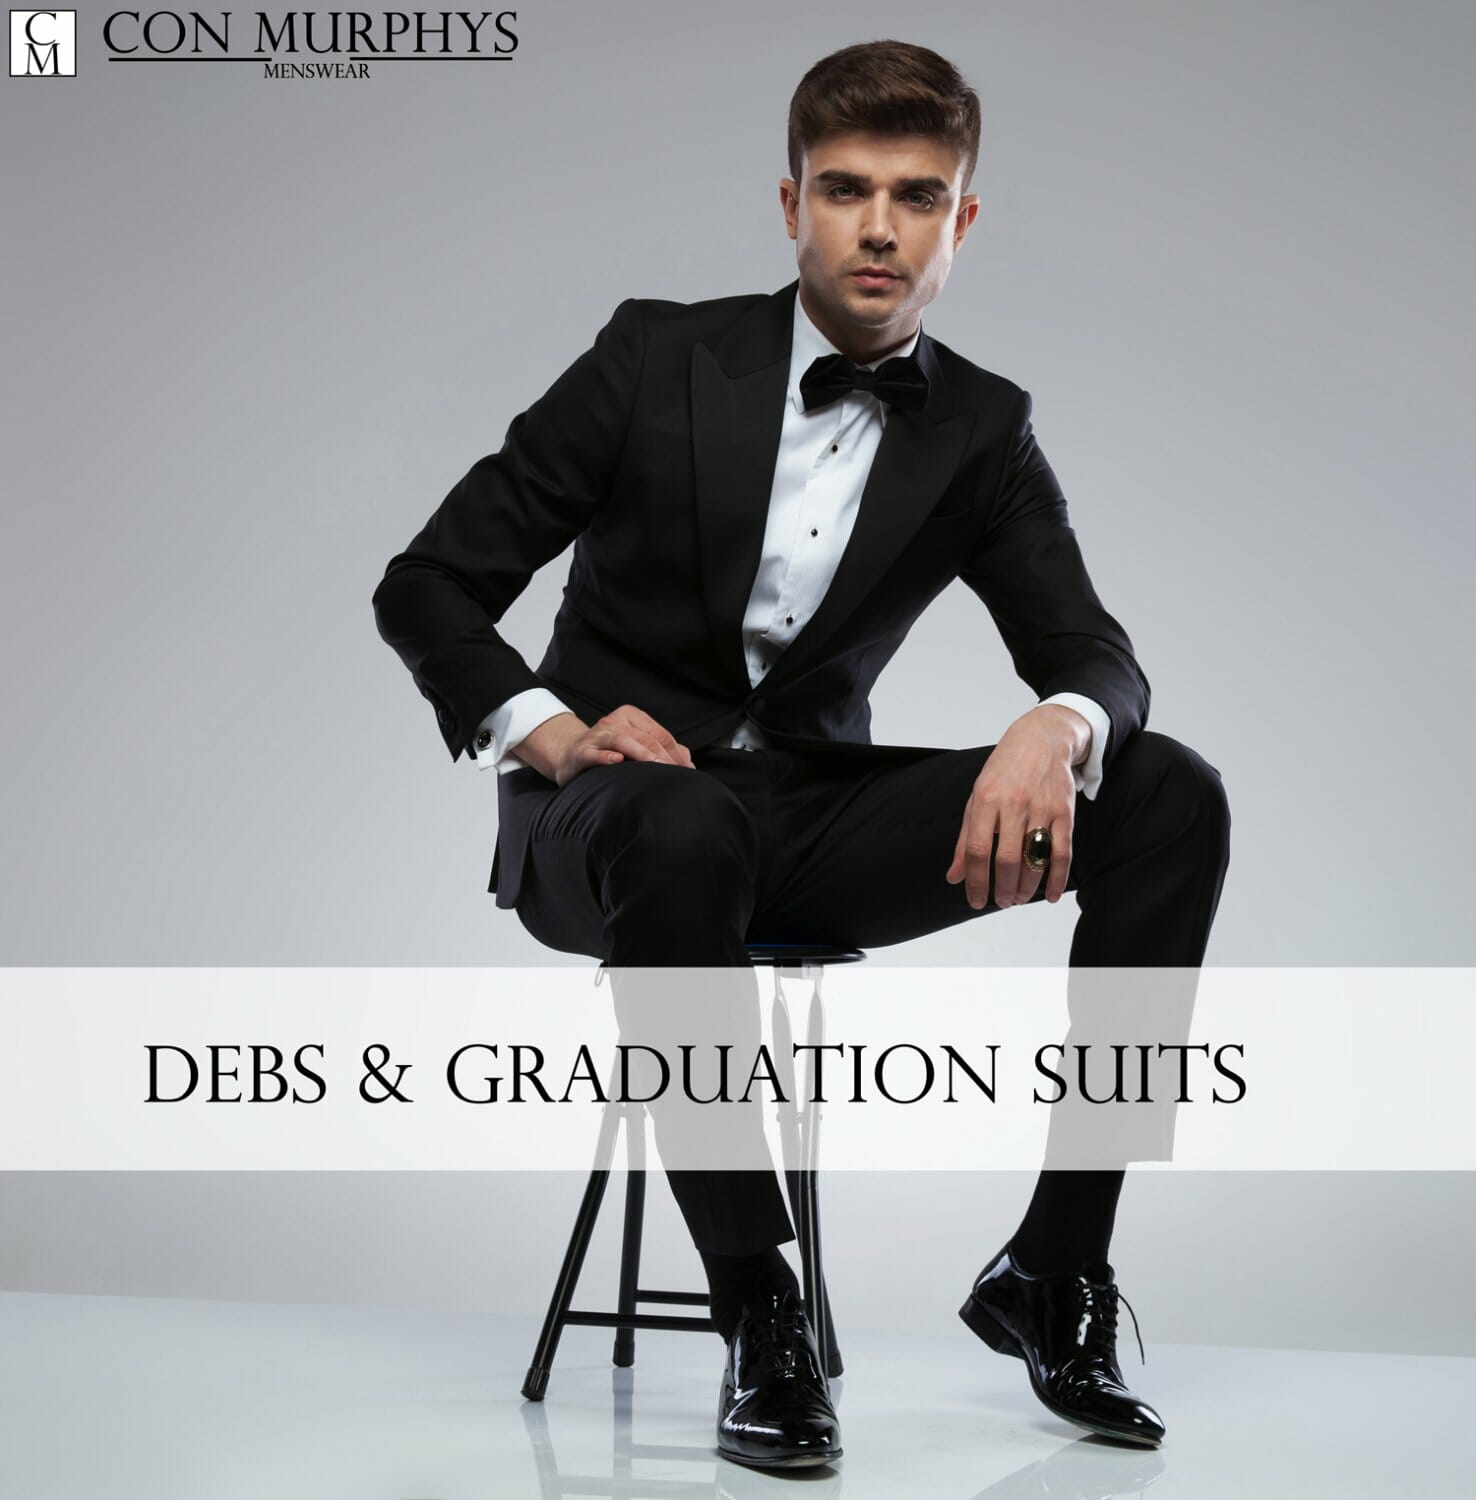 b5f39bb9bc8 After all that hard work to finally get through the Leaving Cert its now  time to celebrate! Your Debs or Graduation as its also called is a truly a  very ...